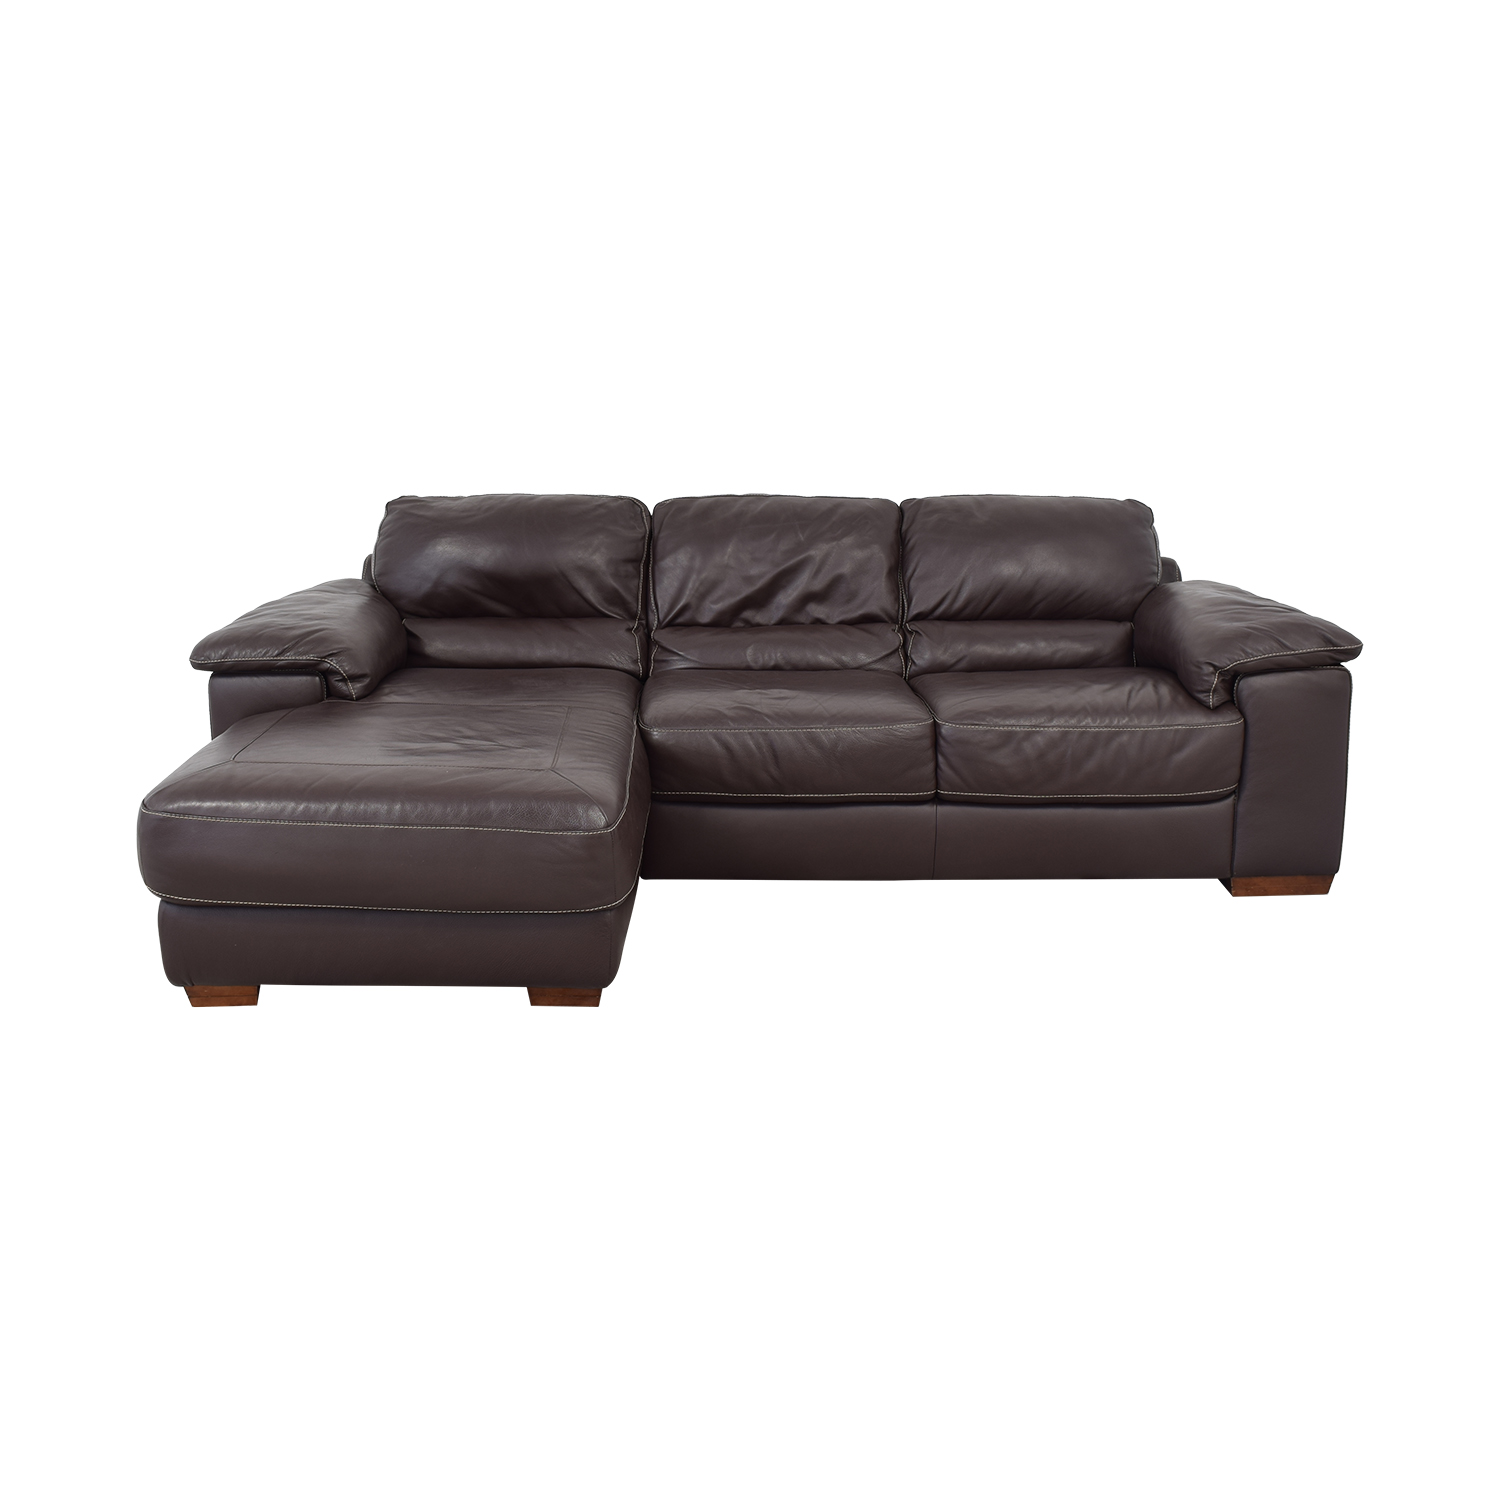 Cindy Crawford Home Cindy Crawford Home Maglie Sectional Sofa dark brown